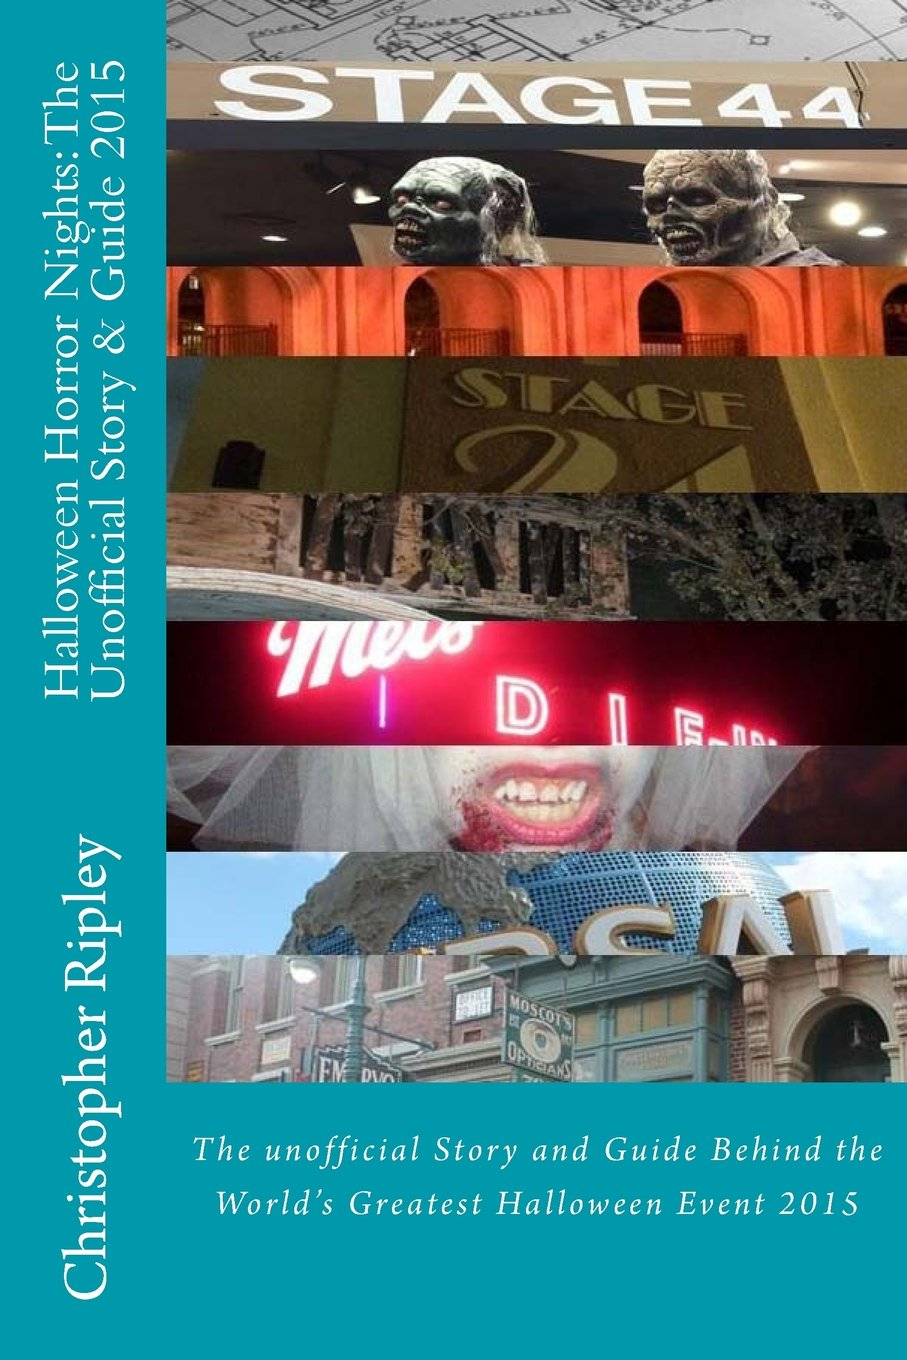 Halloween Horror Nights: The Unofficial Story & Guide (2015): The Unofficial Story and Guide Behind the World's Greatest Halloween Event